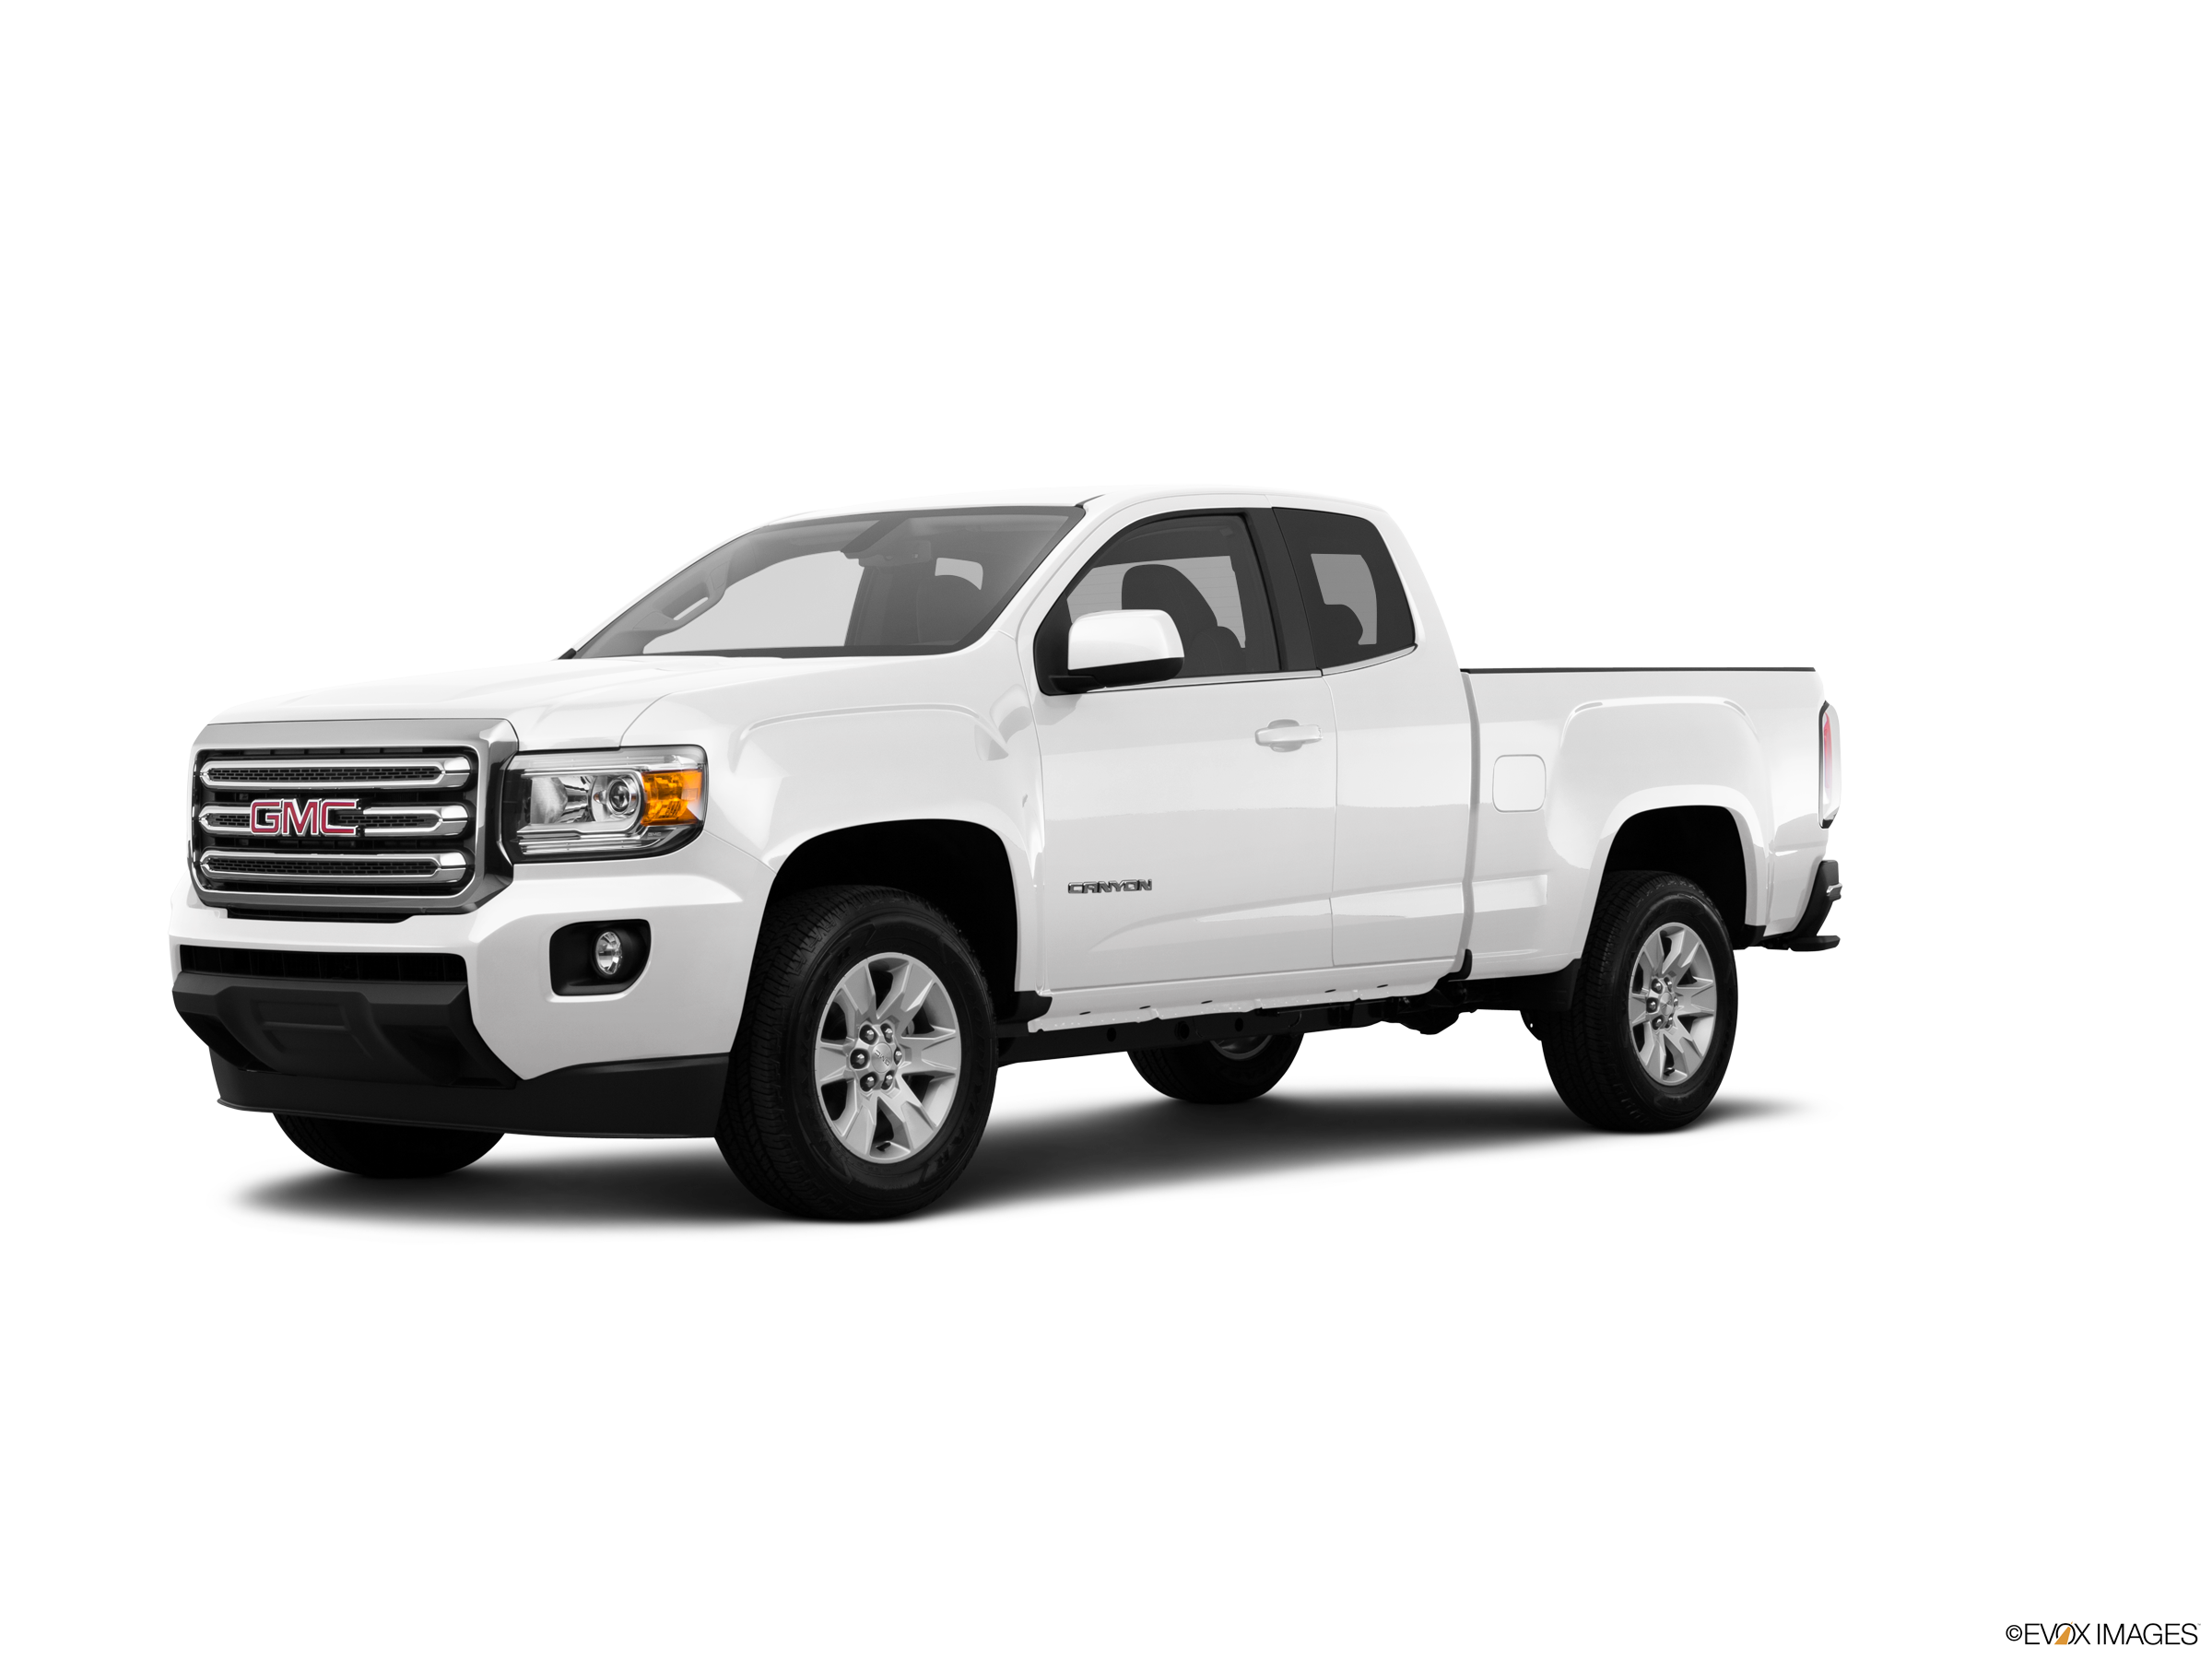 2015 gmc canyon values cars for sale kelley blue book 2015 gmc canyon values cars for sale